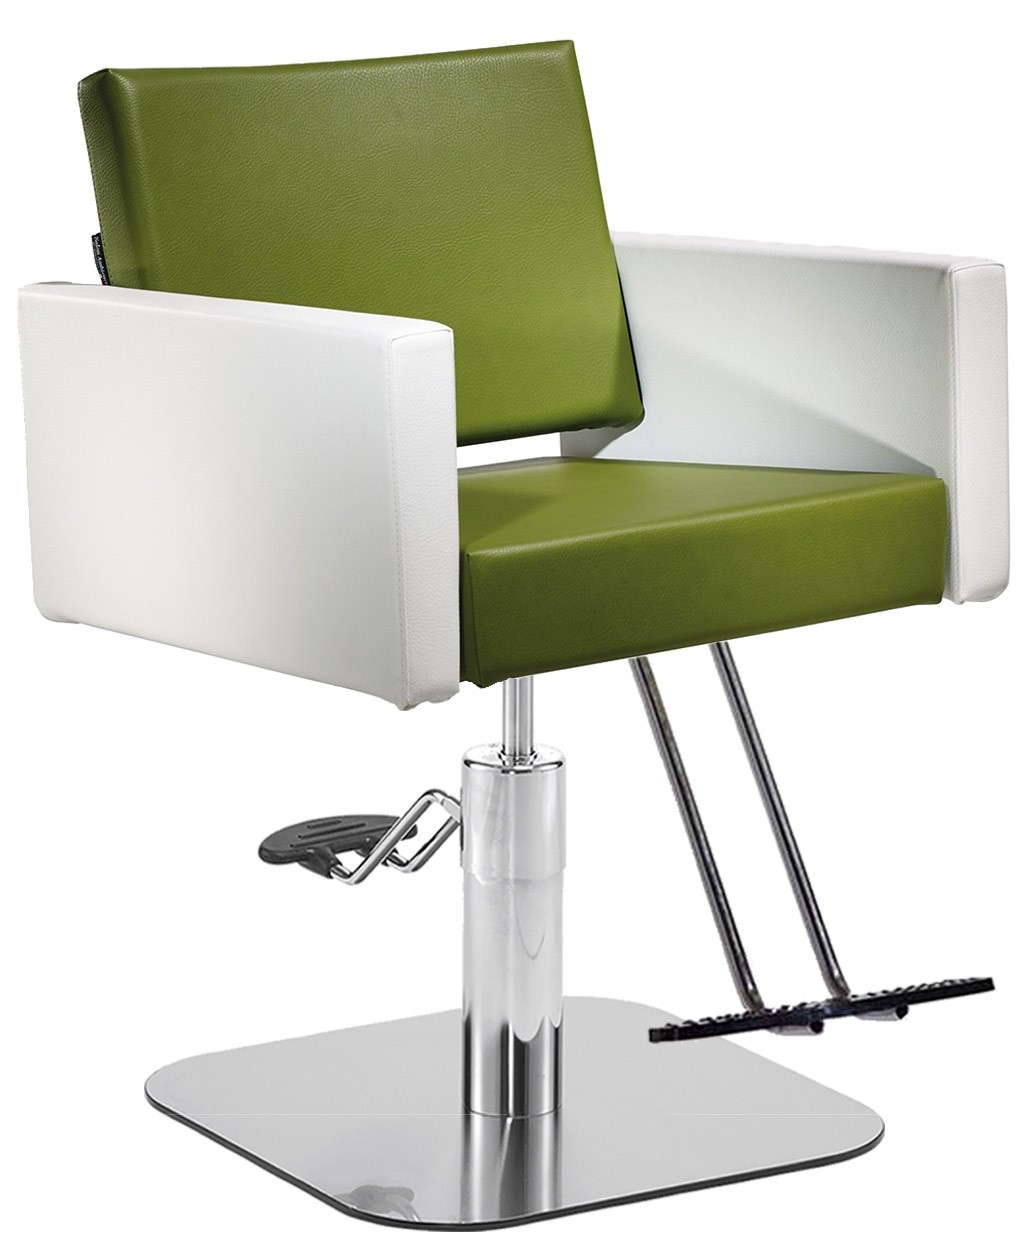 SH-780 Kubik Styling Chair